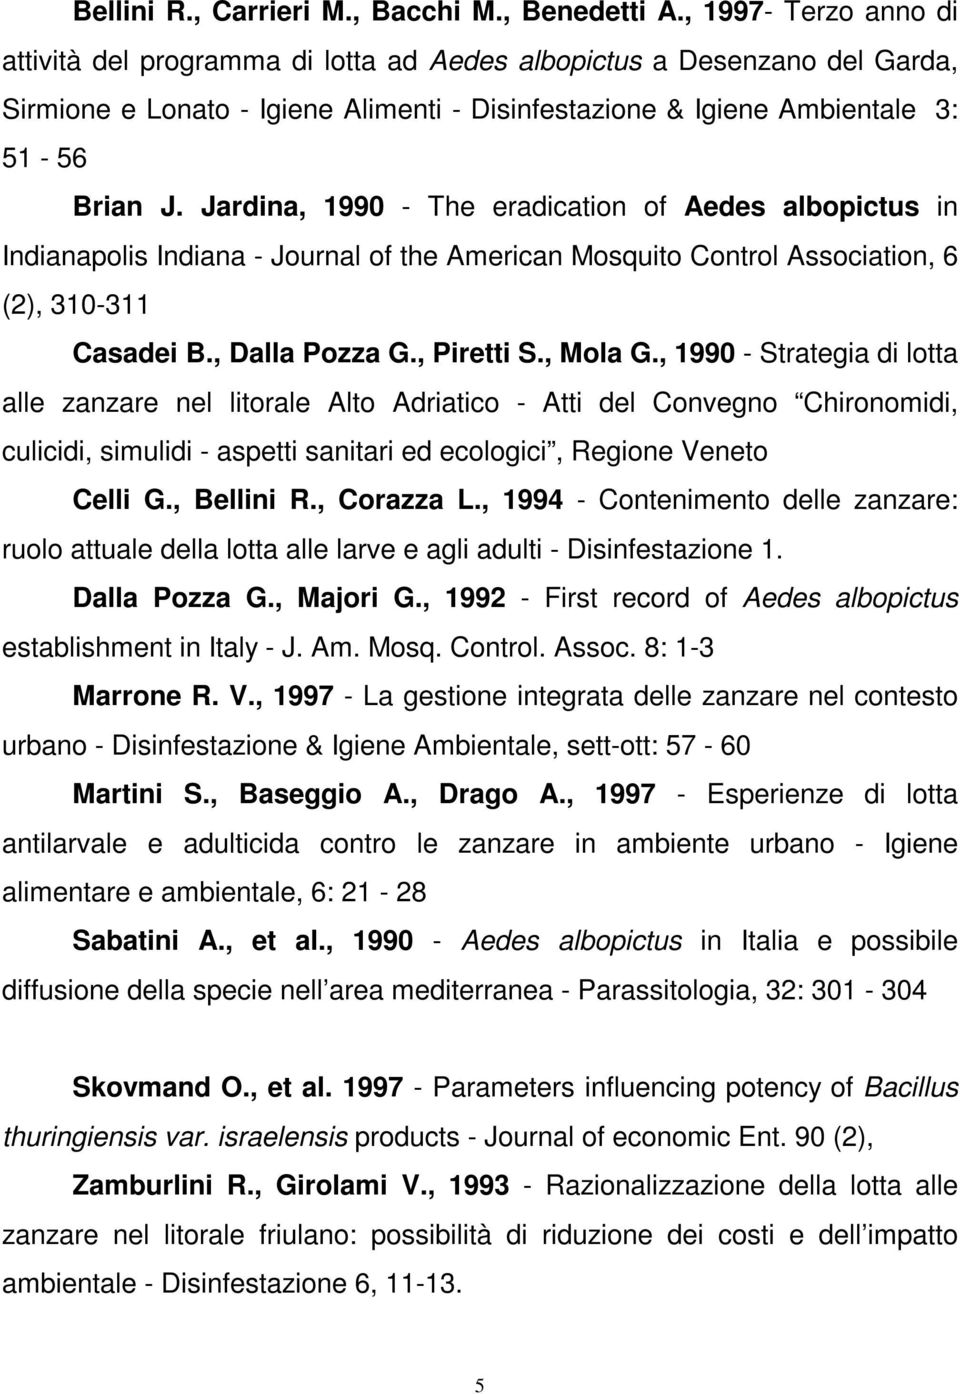 Jardina, 1990 - The eradication of Aedes albopictus in Indianapolis Indiana - Journal of the American Mosquito Control Association, 6 (2), 310-311 Casadei B., Dalla Pozza G., Piretti S., Mola G.